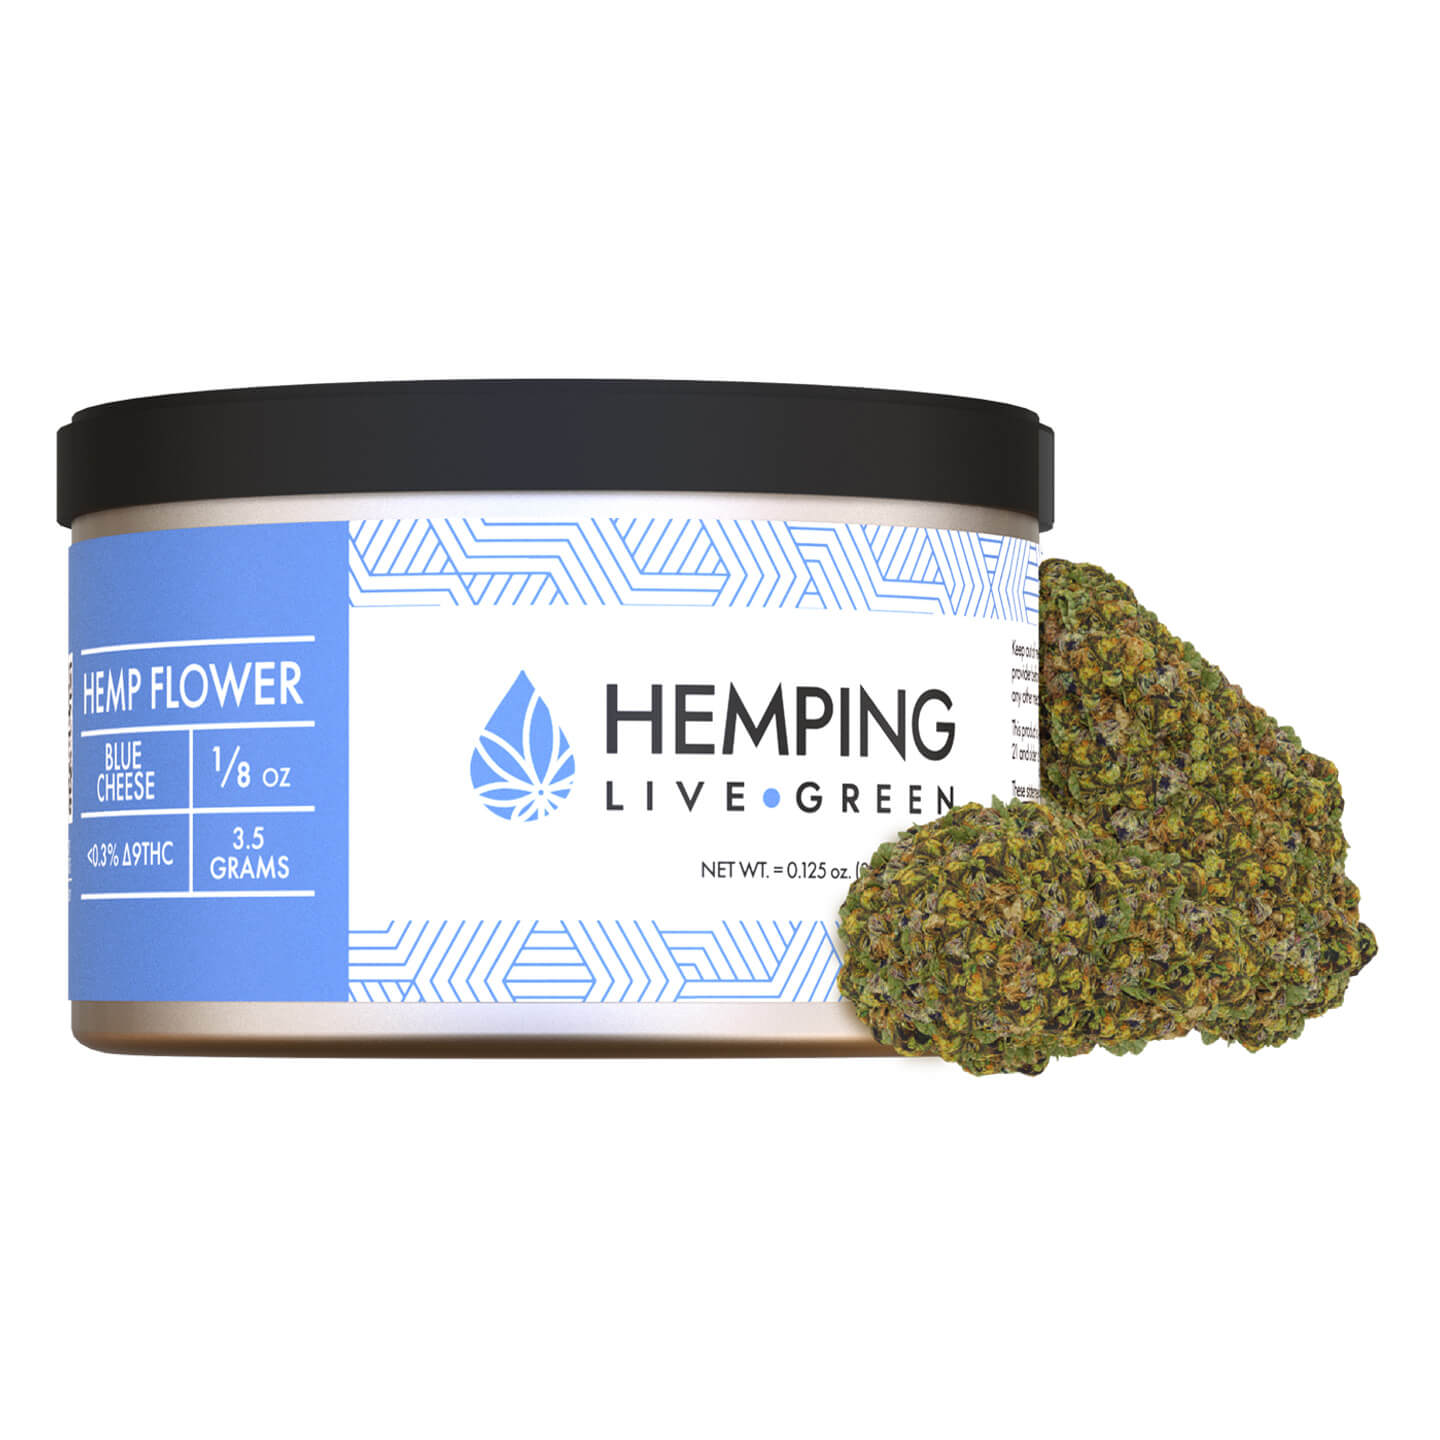 Hemp Flower(Blue Cheese)